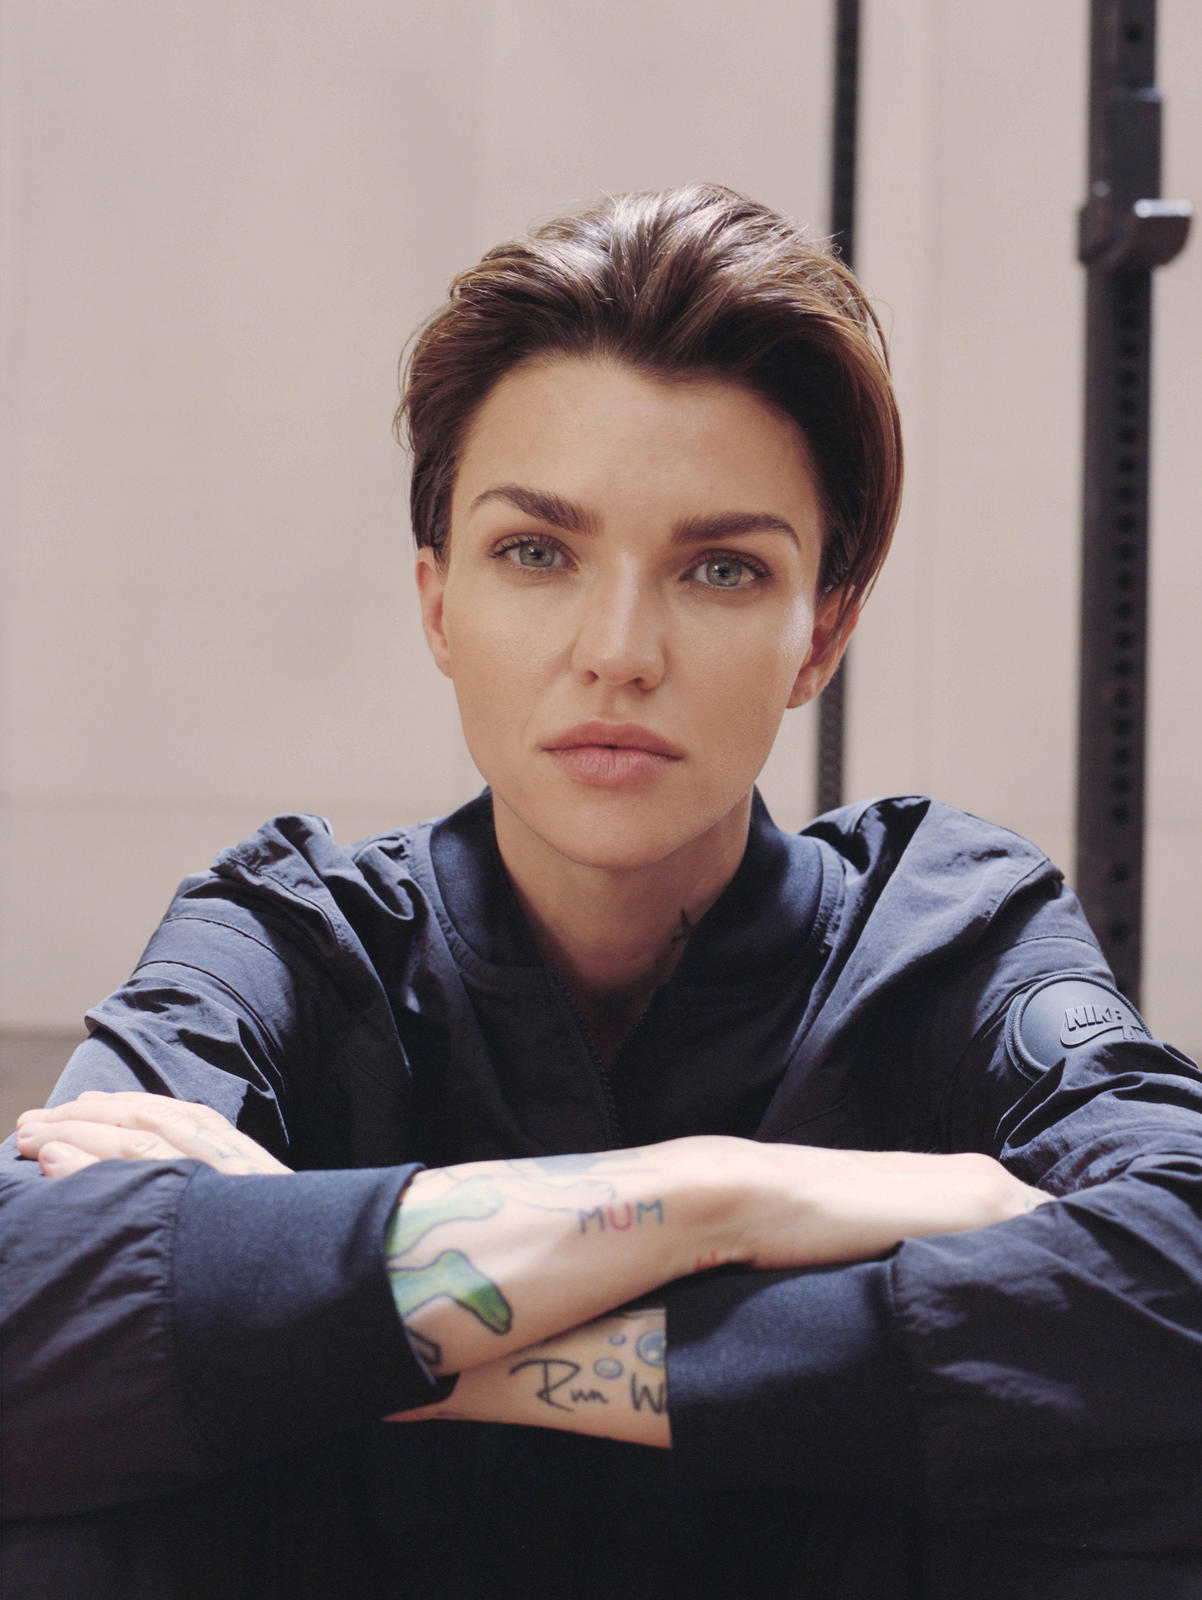 e192e5e2c47 Force is Female Celebrates Ruby Rose s Relentless Drive - Nike News